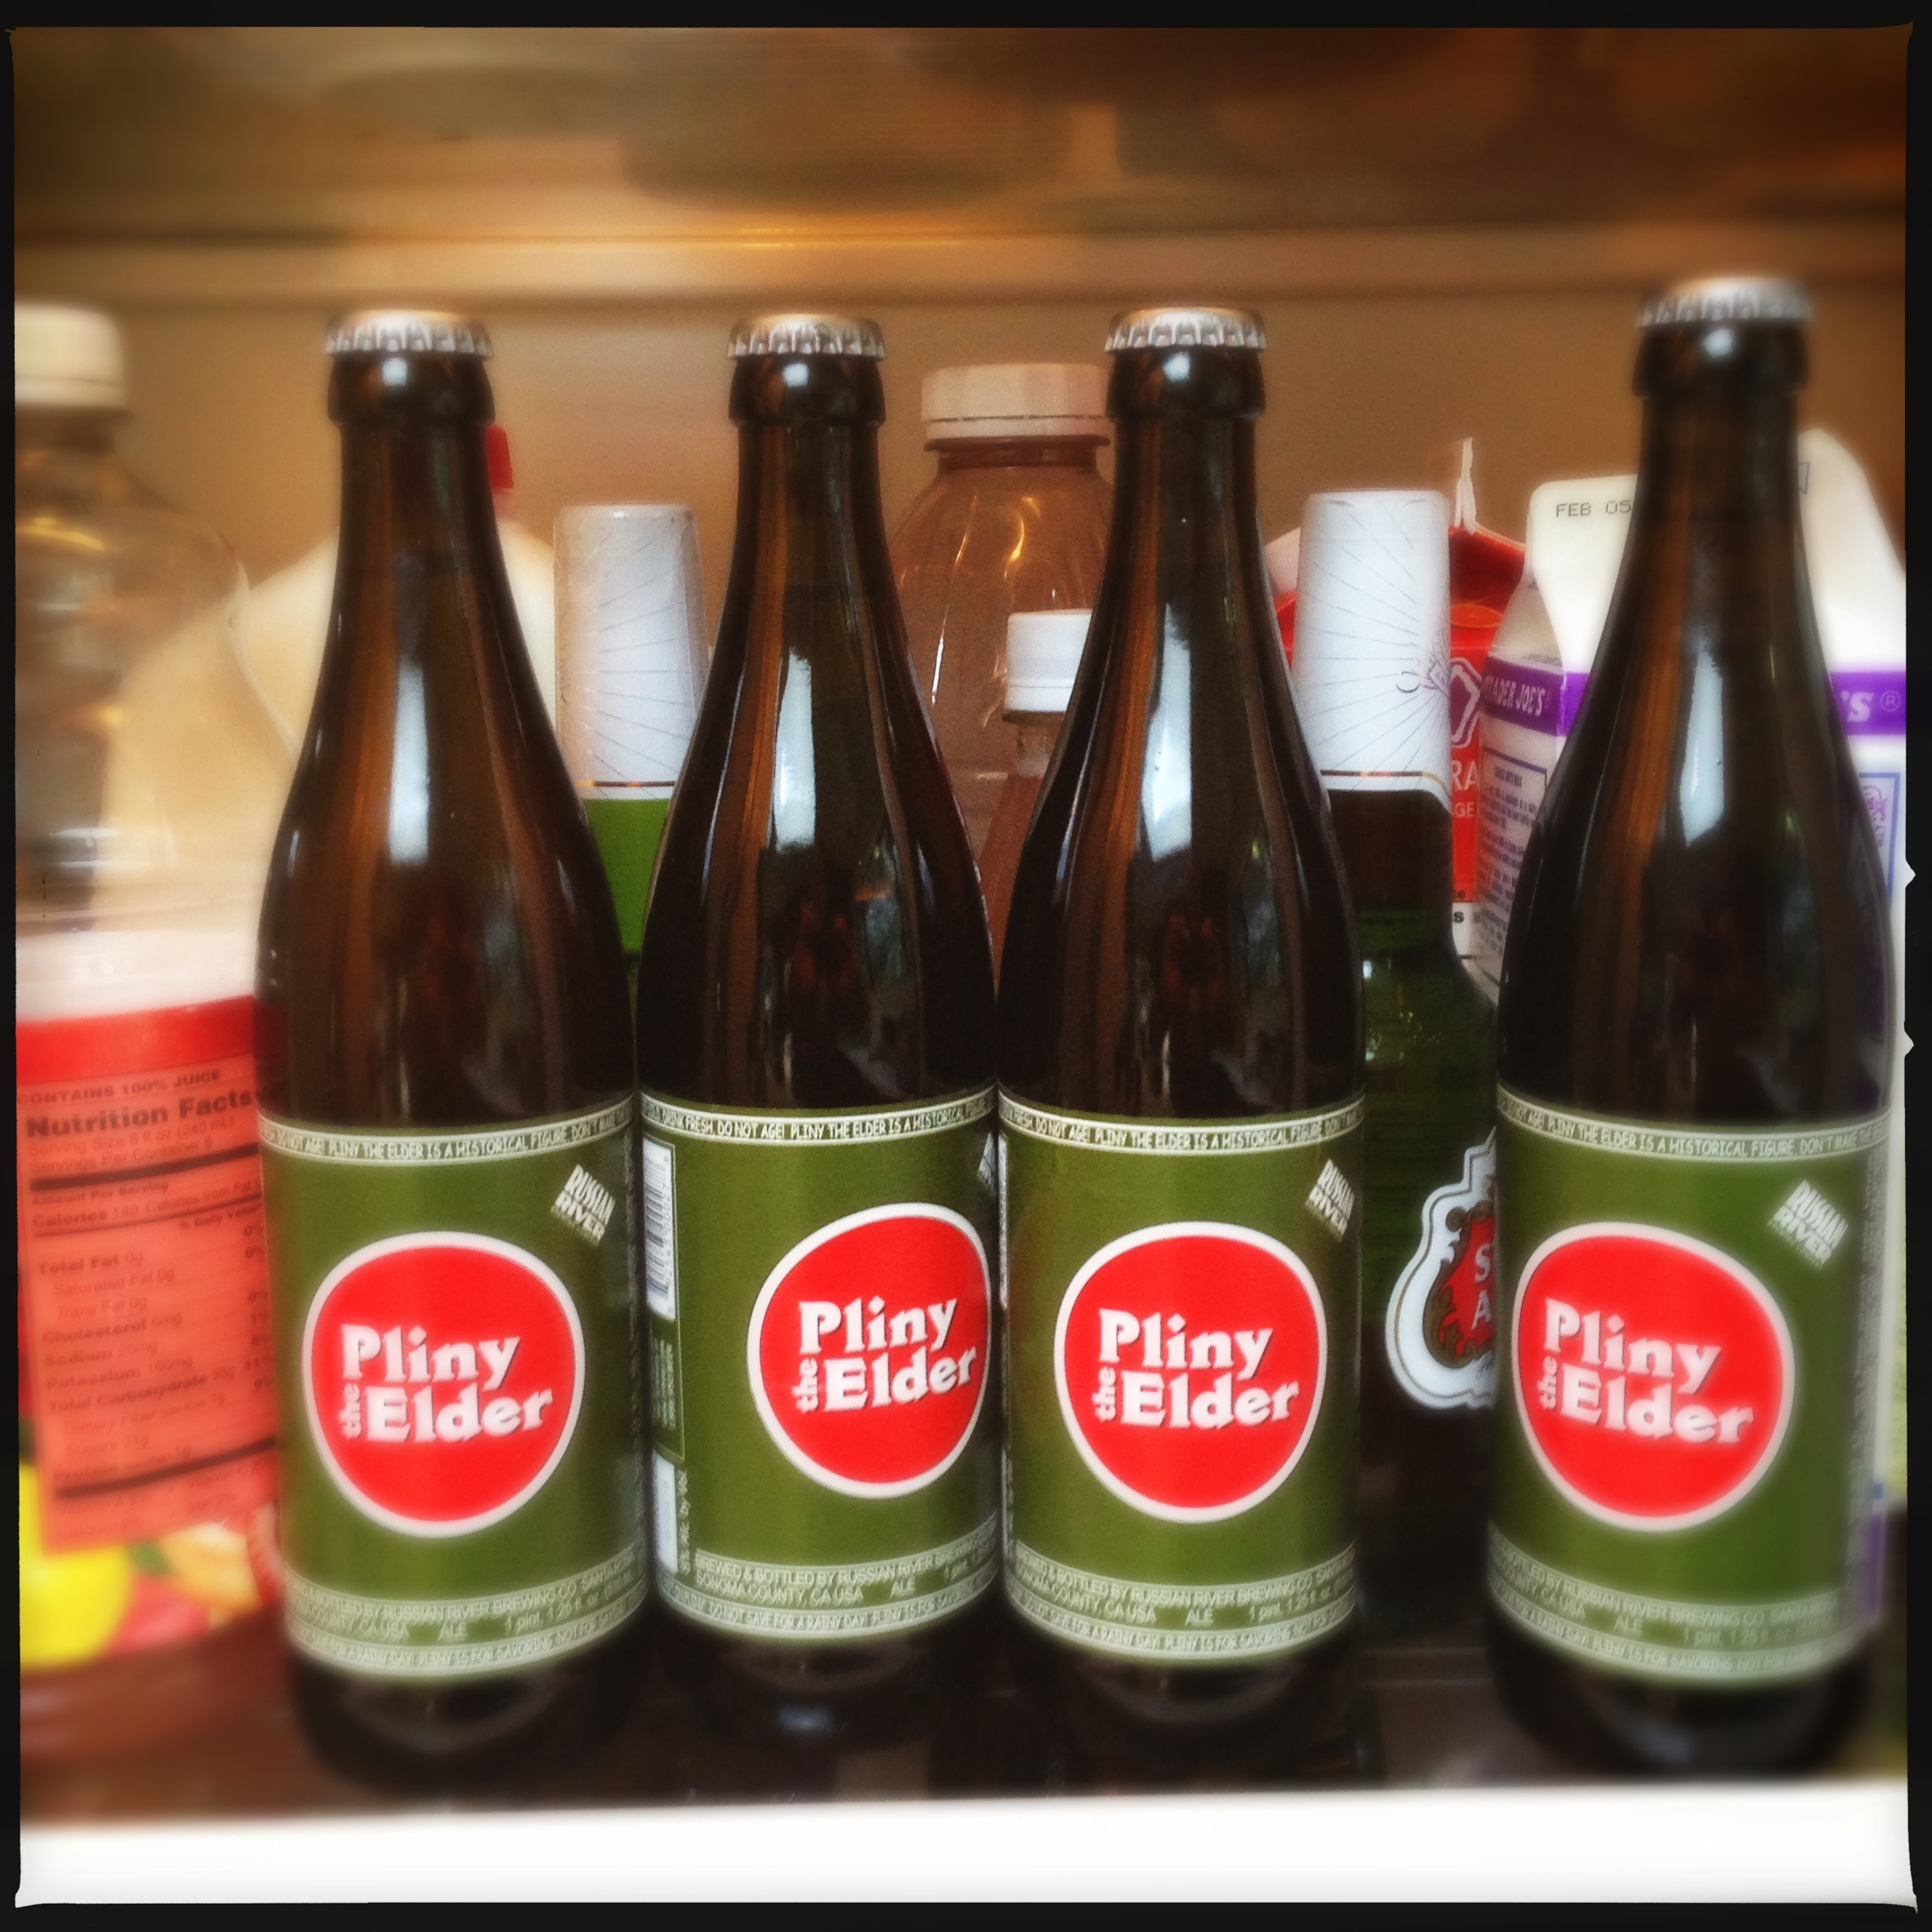 Pliny, crowding out the other beers in my fridge